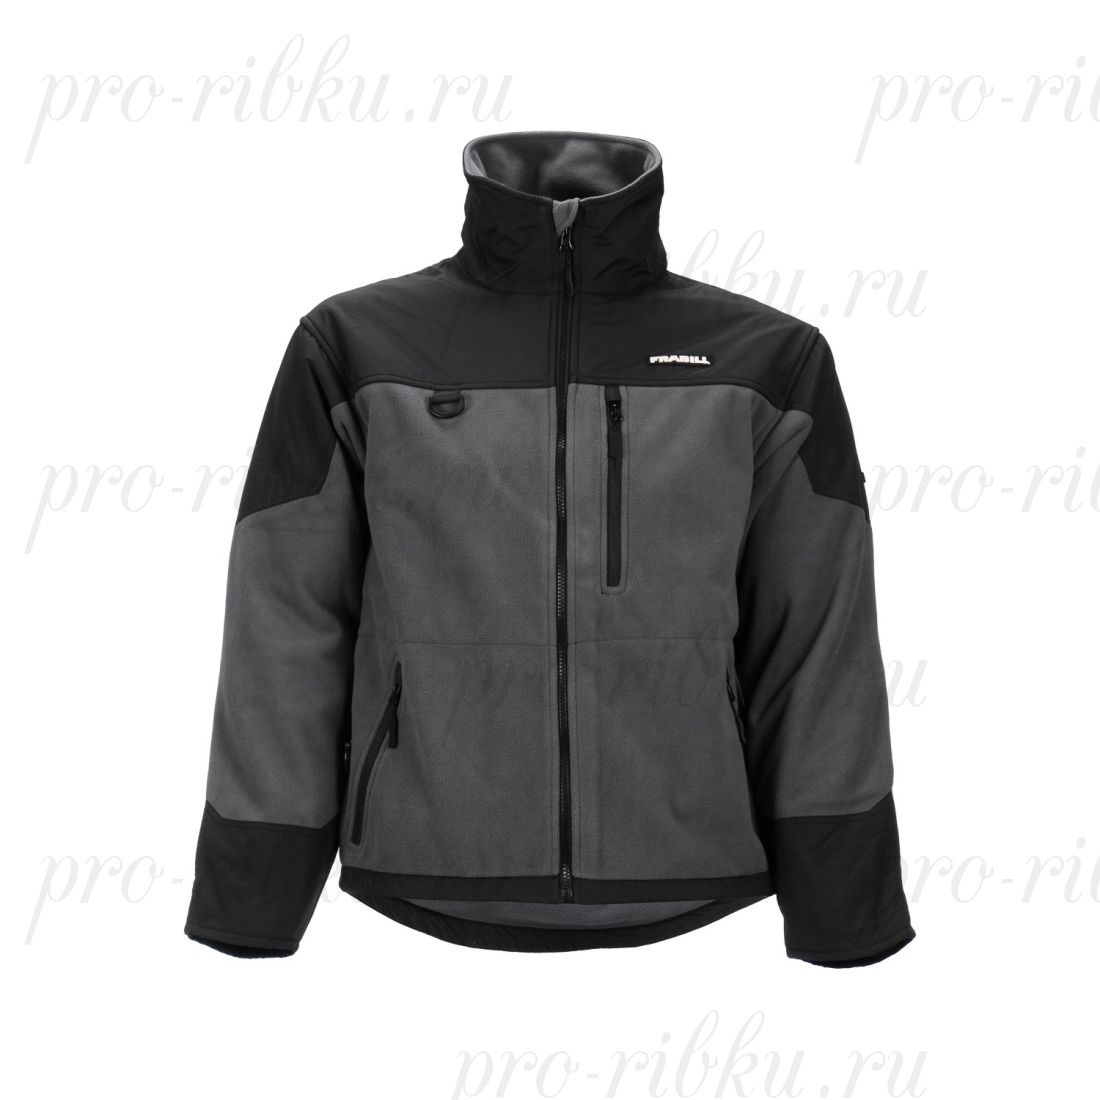 Куртка флисовая Frabill FXE WINDPROOF FLEECE Jacket размер M